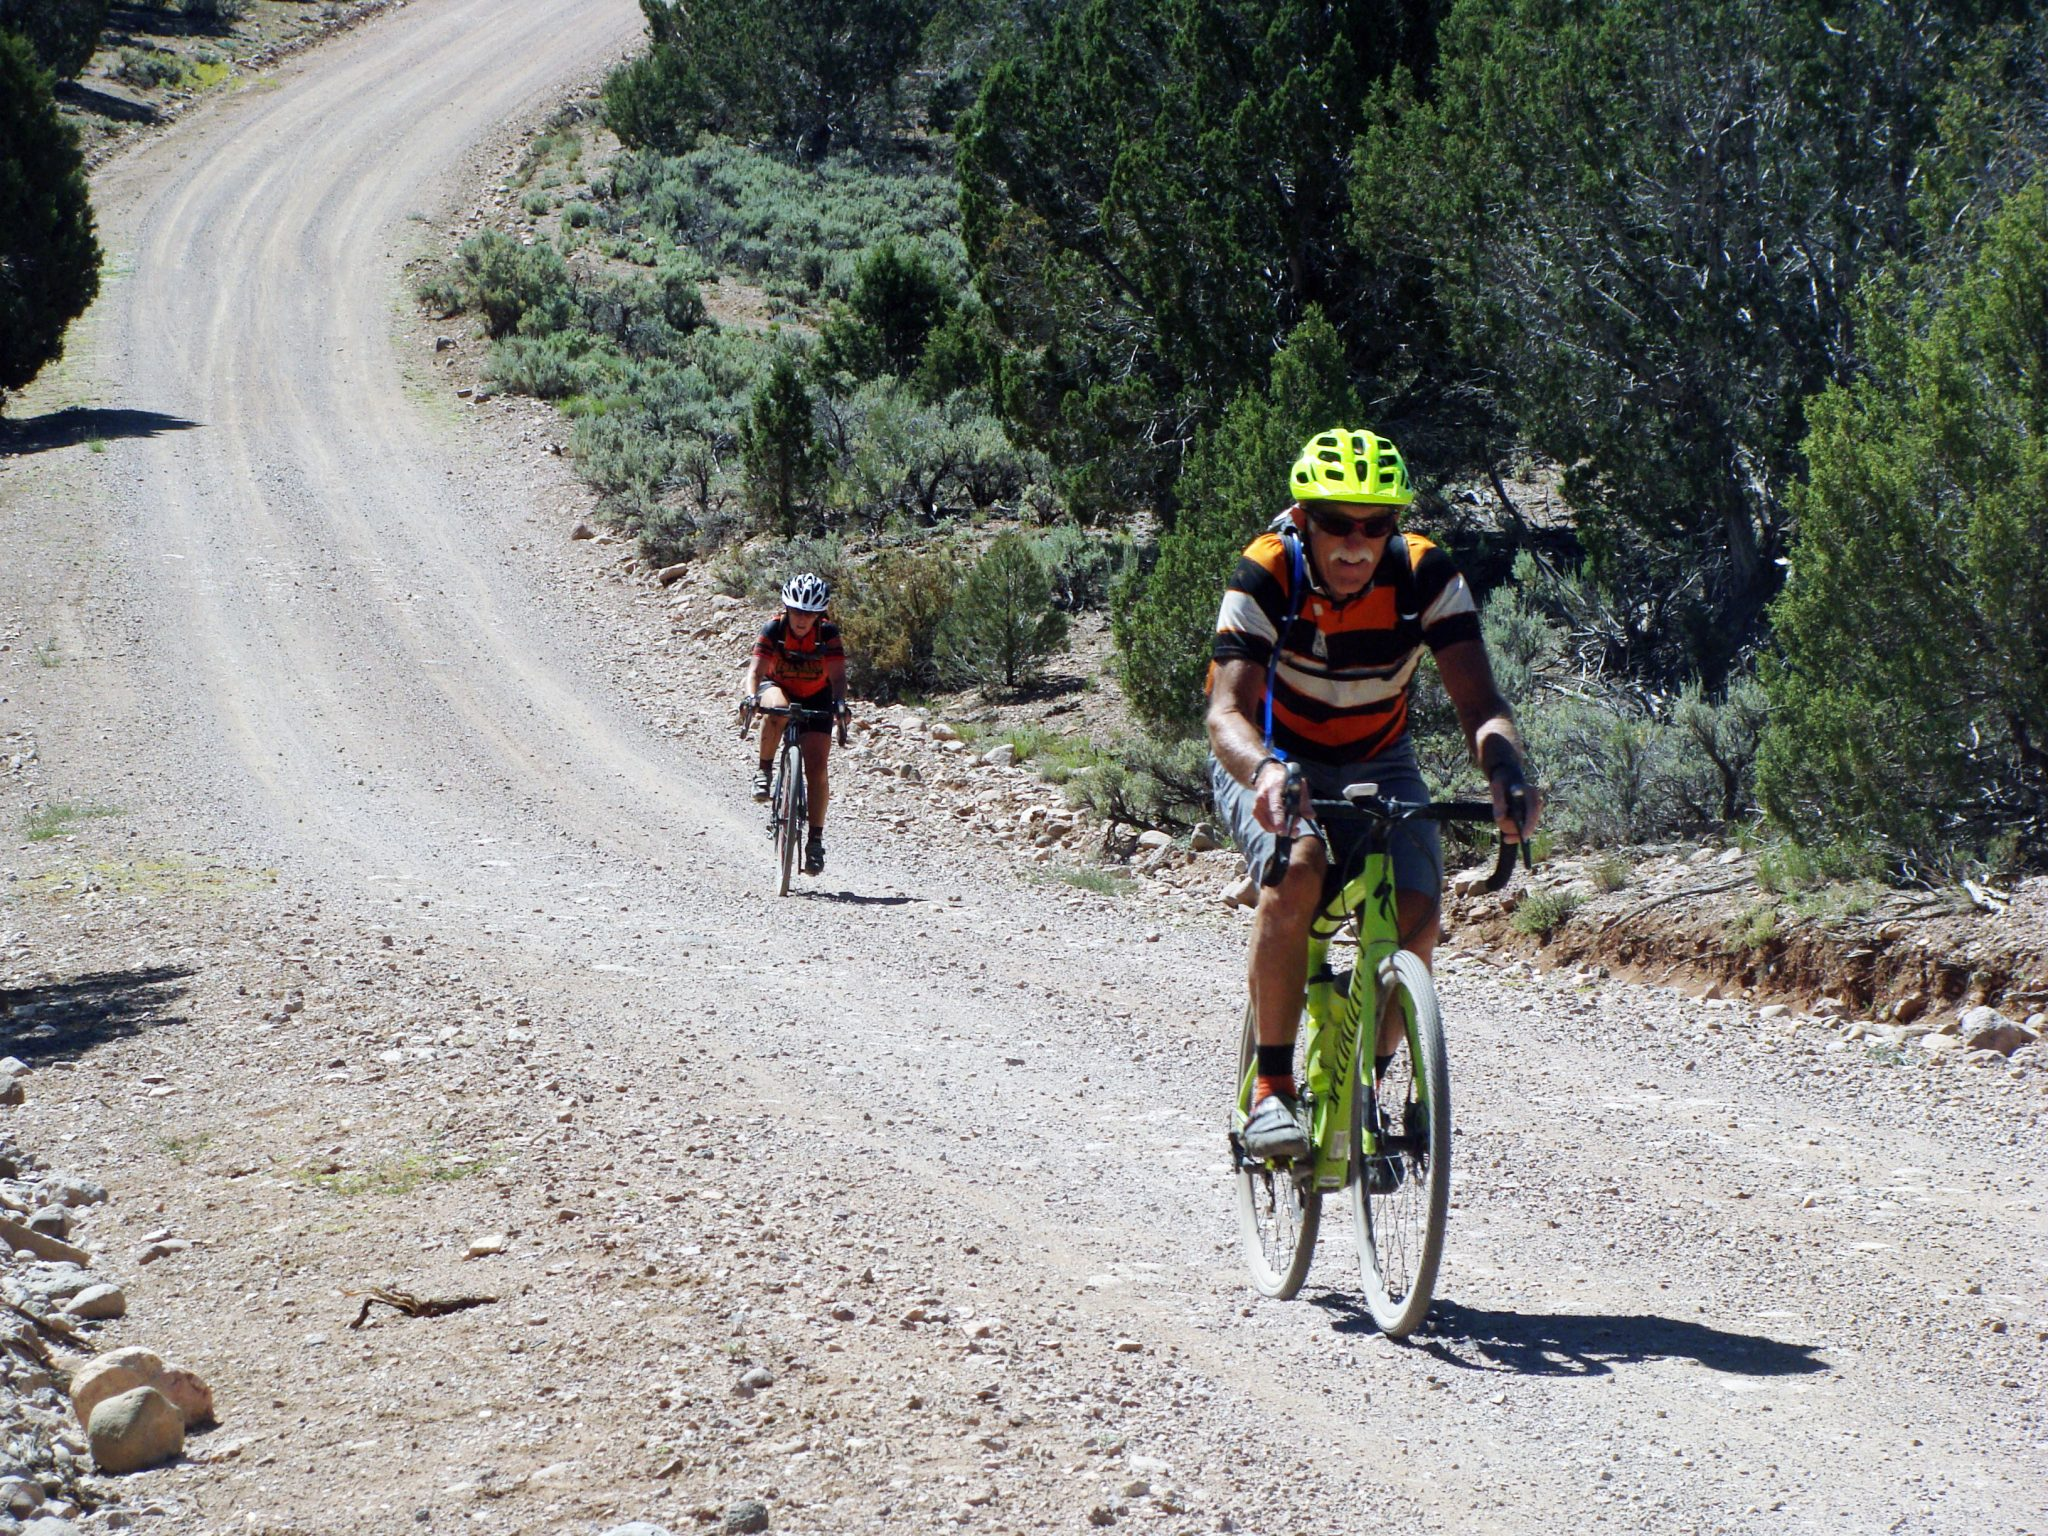 Participants laud Gravel Grinder event